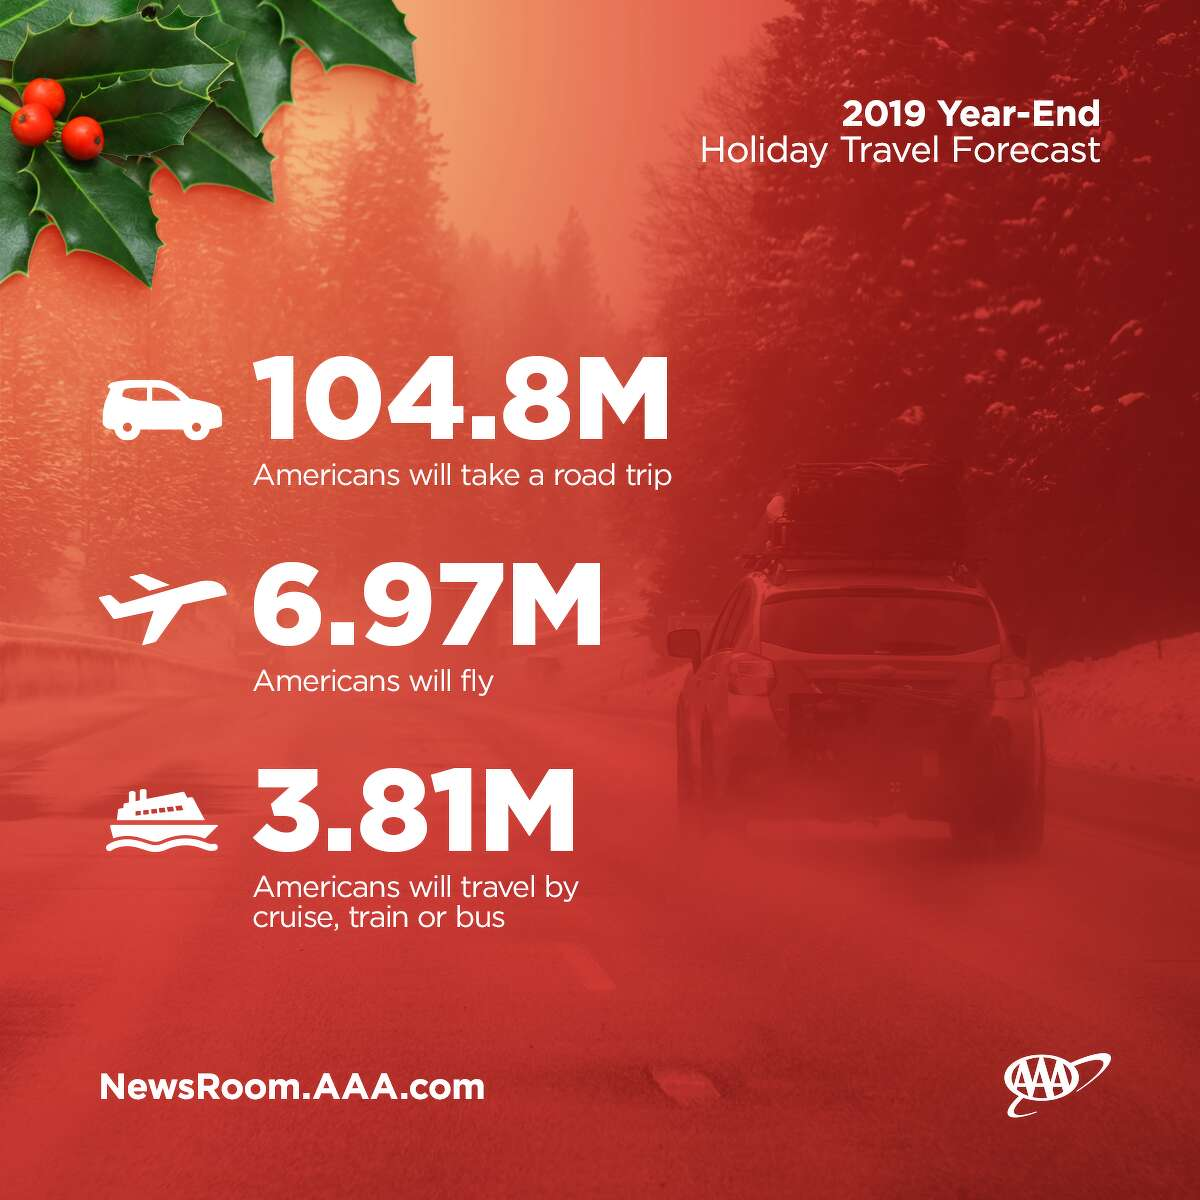 The day after Christmas won't be so merry and bright for travelers, as Dec. 26 is expected to be the worst day for delays and congestion on the roads, according to a report from AAA.